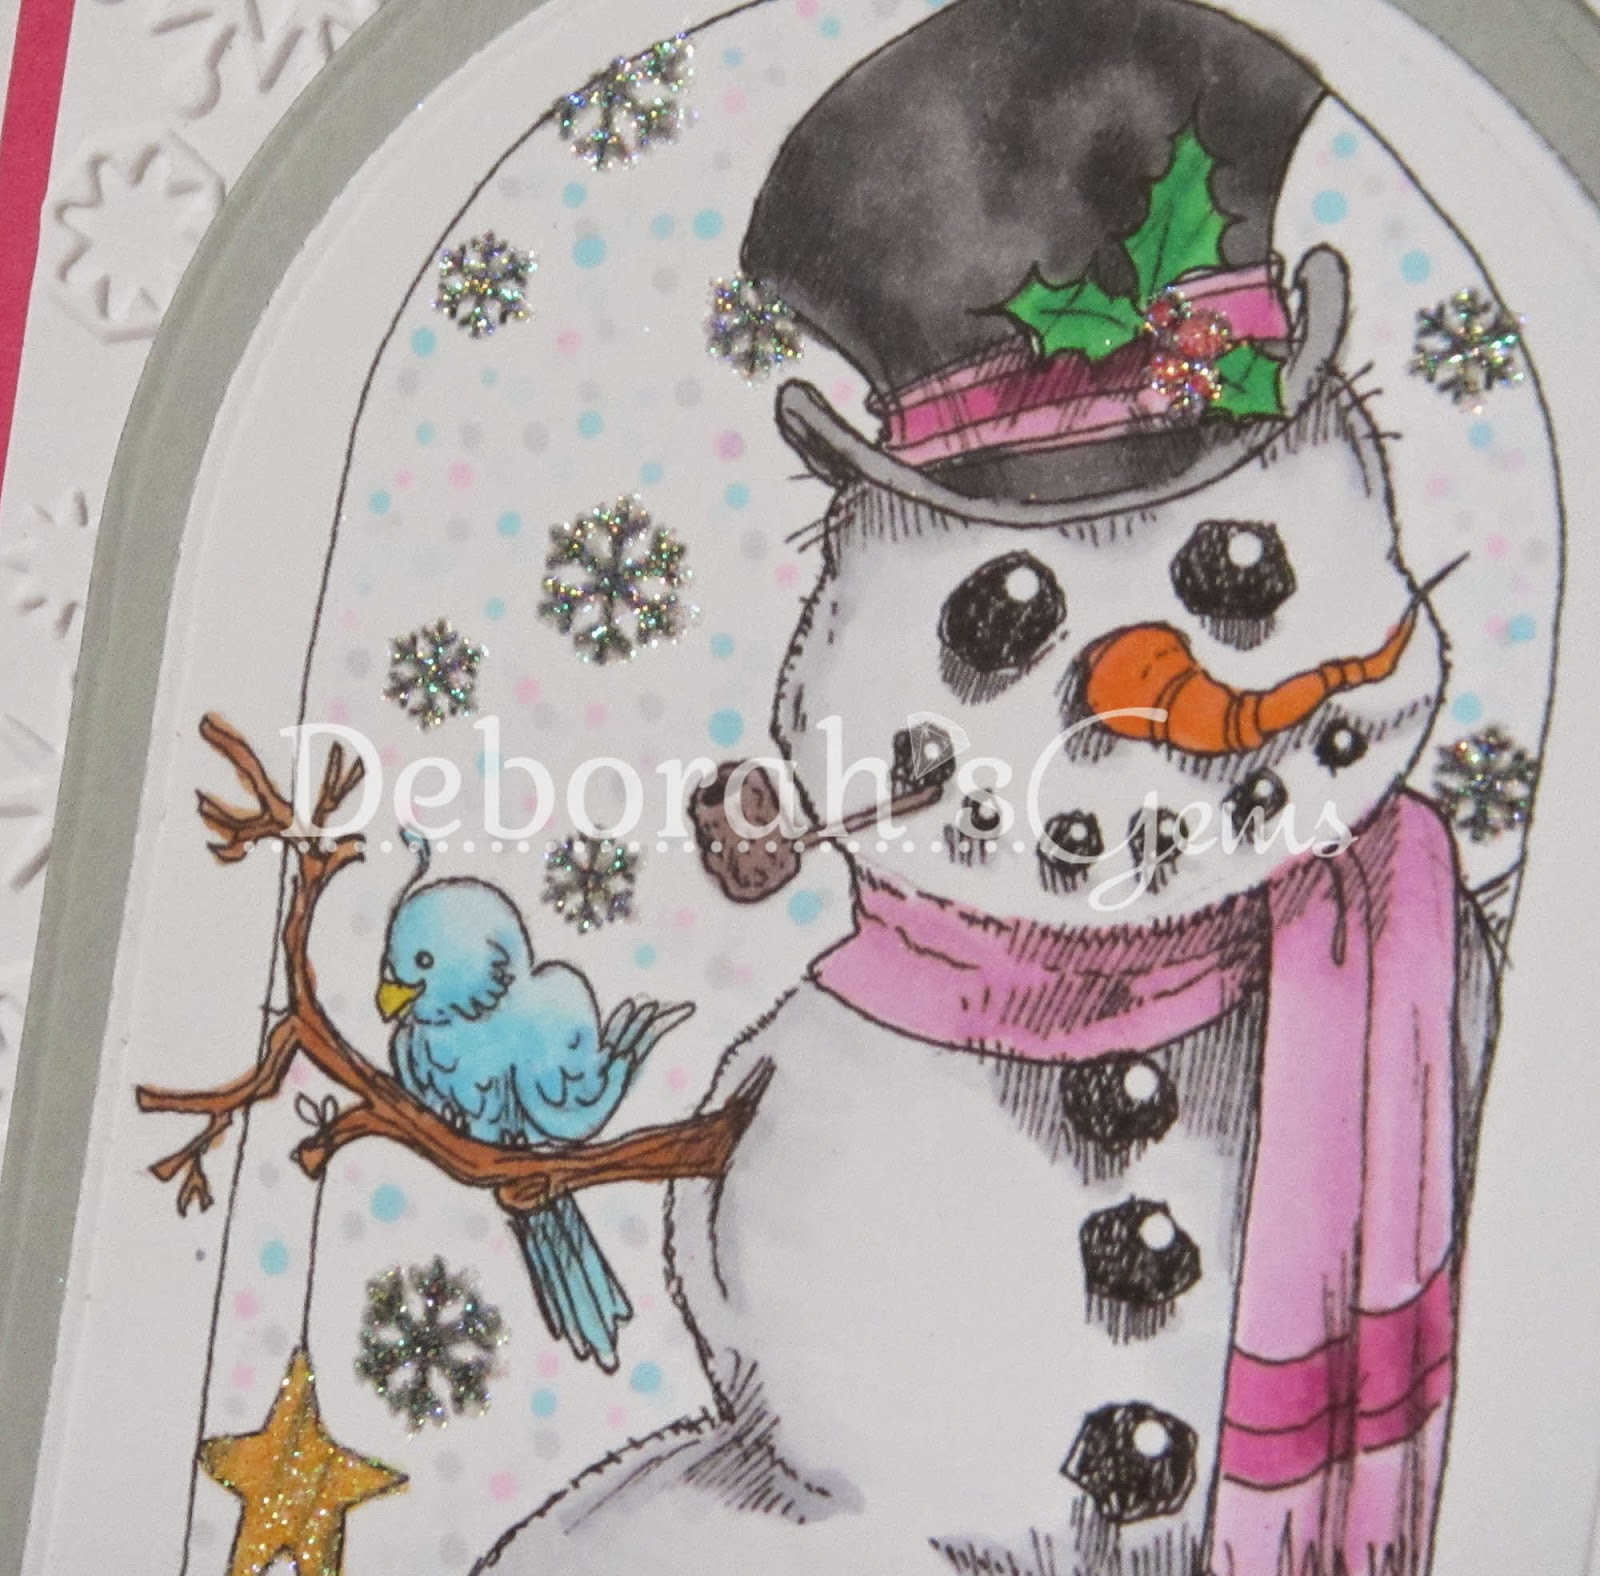 Season's Greetings detail - photo by Deborah Frings - Deborah's Gems